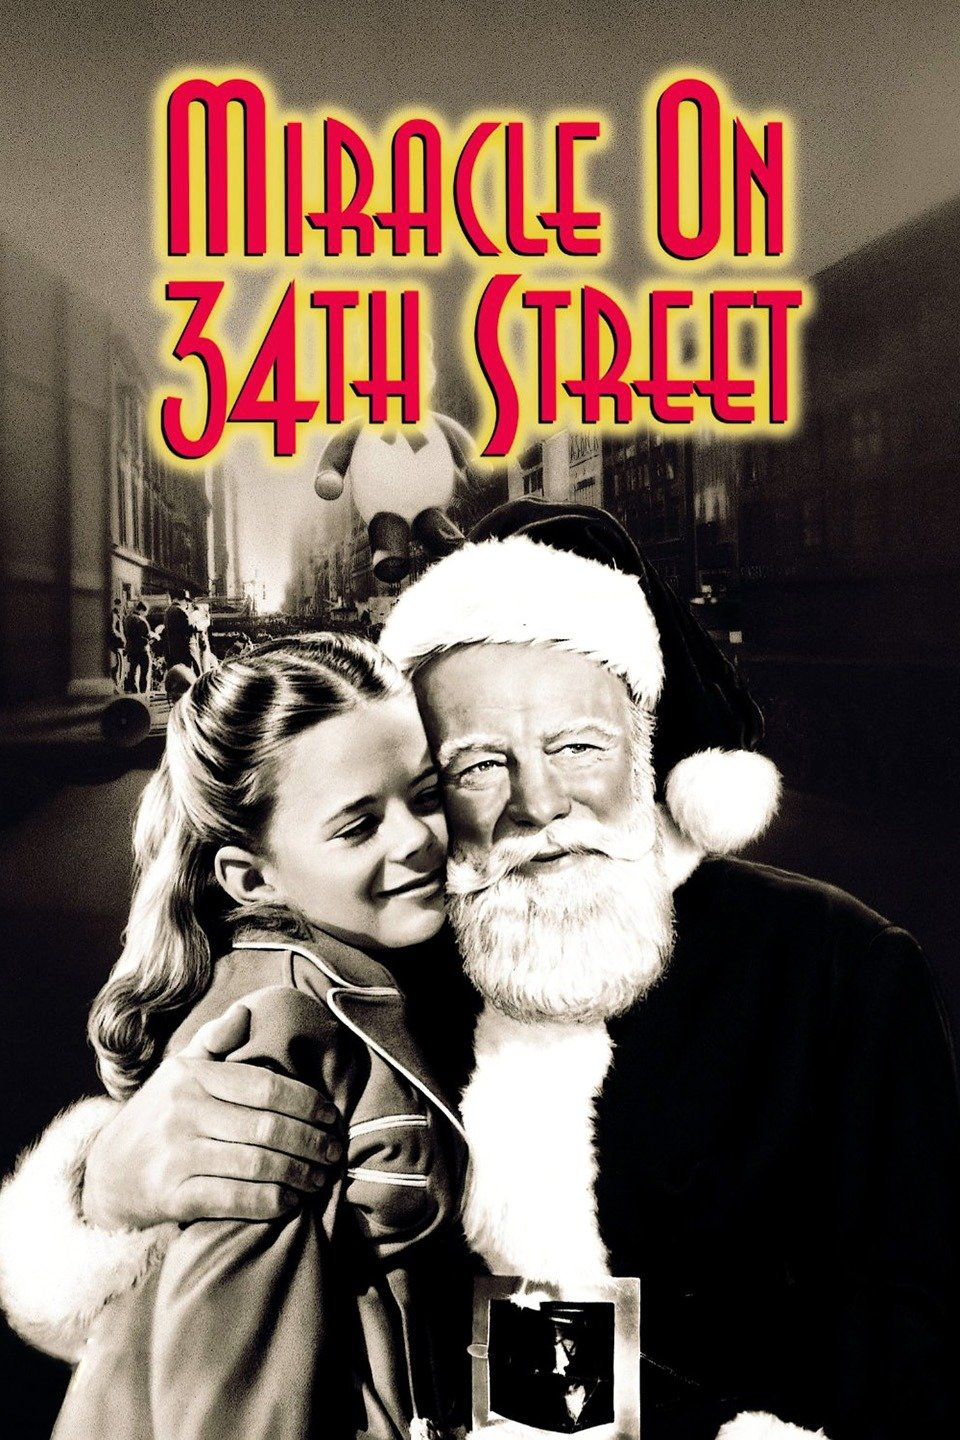 Miracle on 34th Street - An absolute must view, this classic will warm your heart and fill you with Christmas cheer. I recommend the original, but my daughter loves the remake. Either way you can't lose.